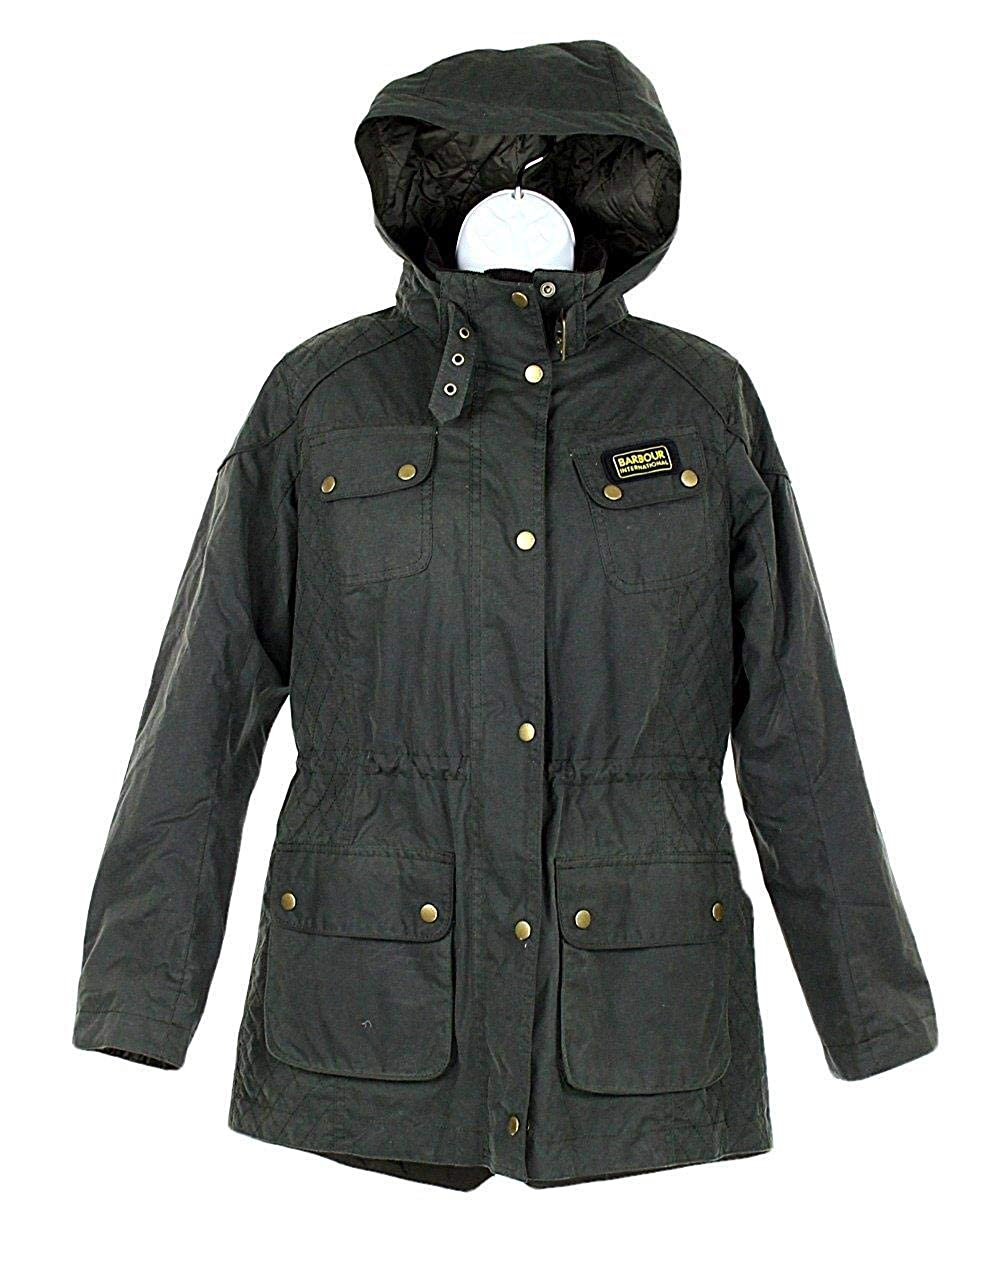 5835a9d89ecf0 Amazon.com: J Crew Barbour Hawkstone Parka in Sage Green Style 96179 Size  12 UK 8 US: Clothing